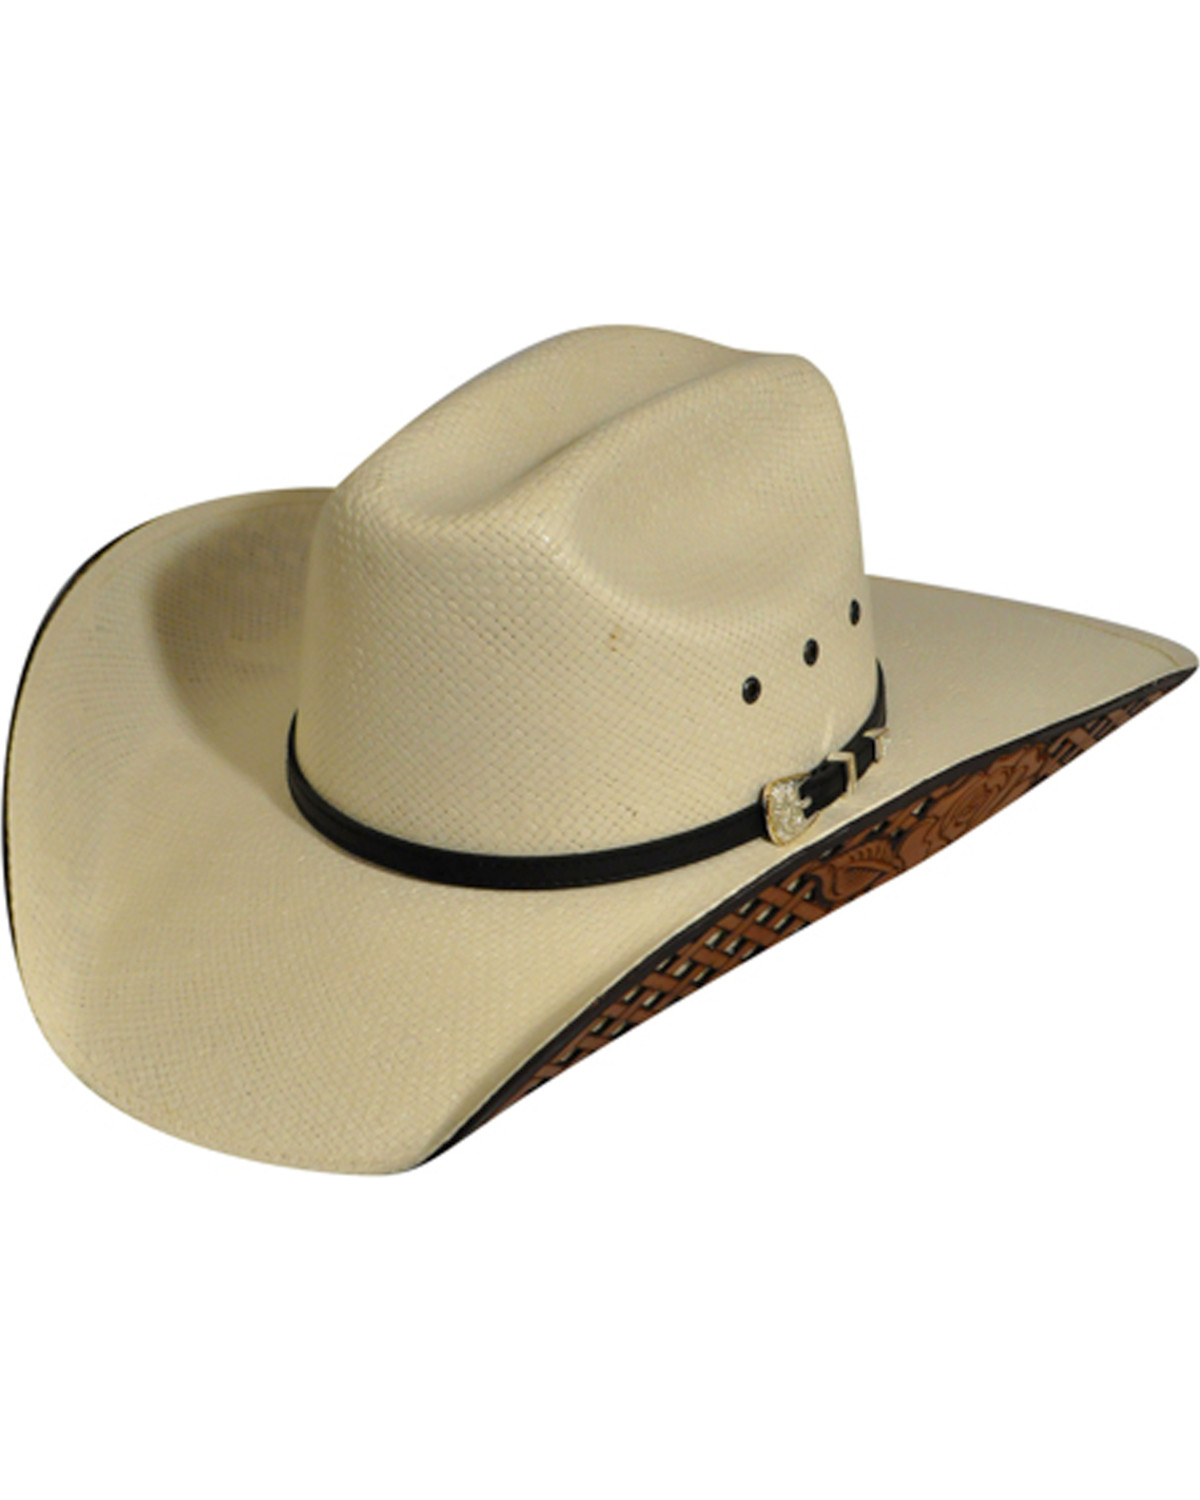 4b9cafc1de380 Zoomed Image Renegade by Bailey Matlyn Straw Cowboy Hat, Natural, hi-res